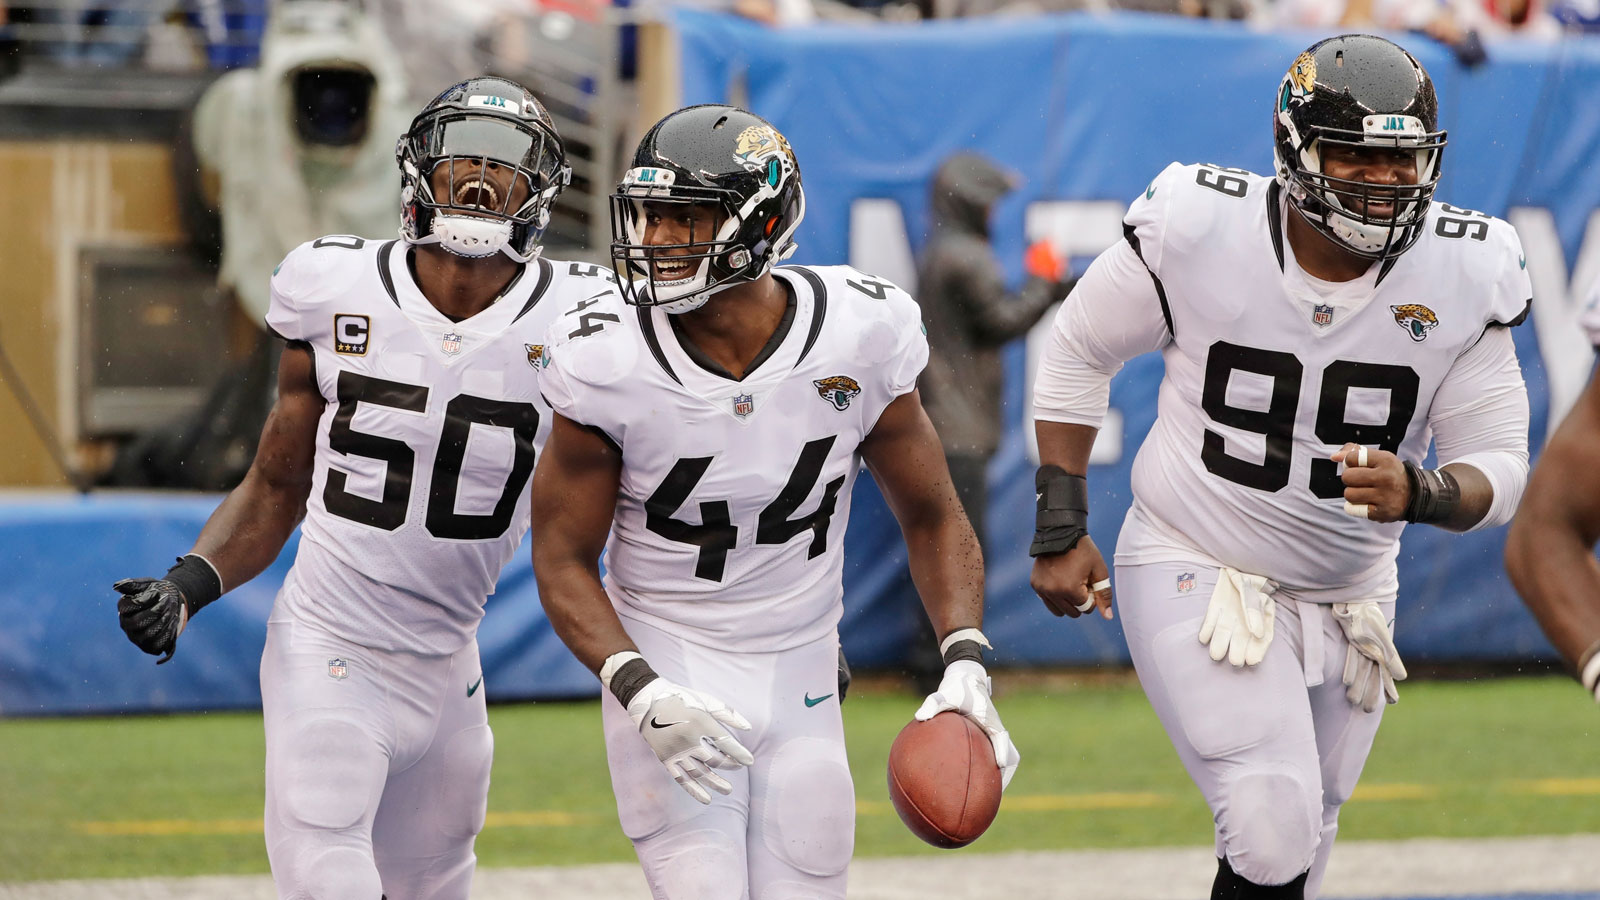 Myles Jack's late pick-6 seals Jaguars' season-opening win over Giants